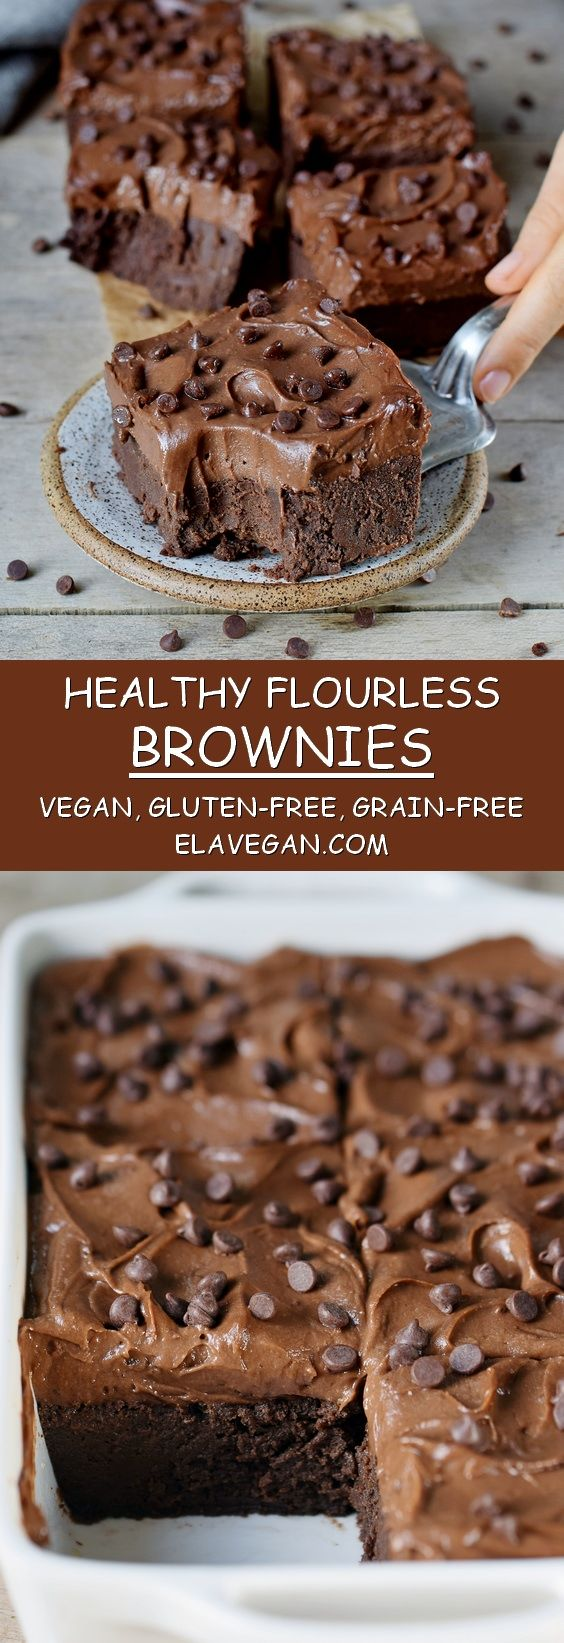 These flourless brownies with a sweet potato frosting are absolutely delectable. They are vegan, gluten-free, oil-free, grain-free, protein-rich, fudgy, chocolatey, and so rich! Made with chickpeas and other wholesome ingredients! #vegan #glutenfree #grainfree #chocolate #brownies #flourless #veganbrownies | elavegan.com #desertlife